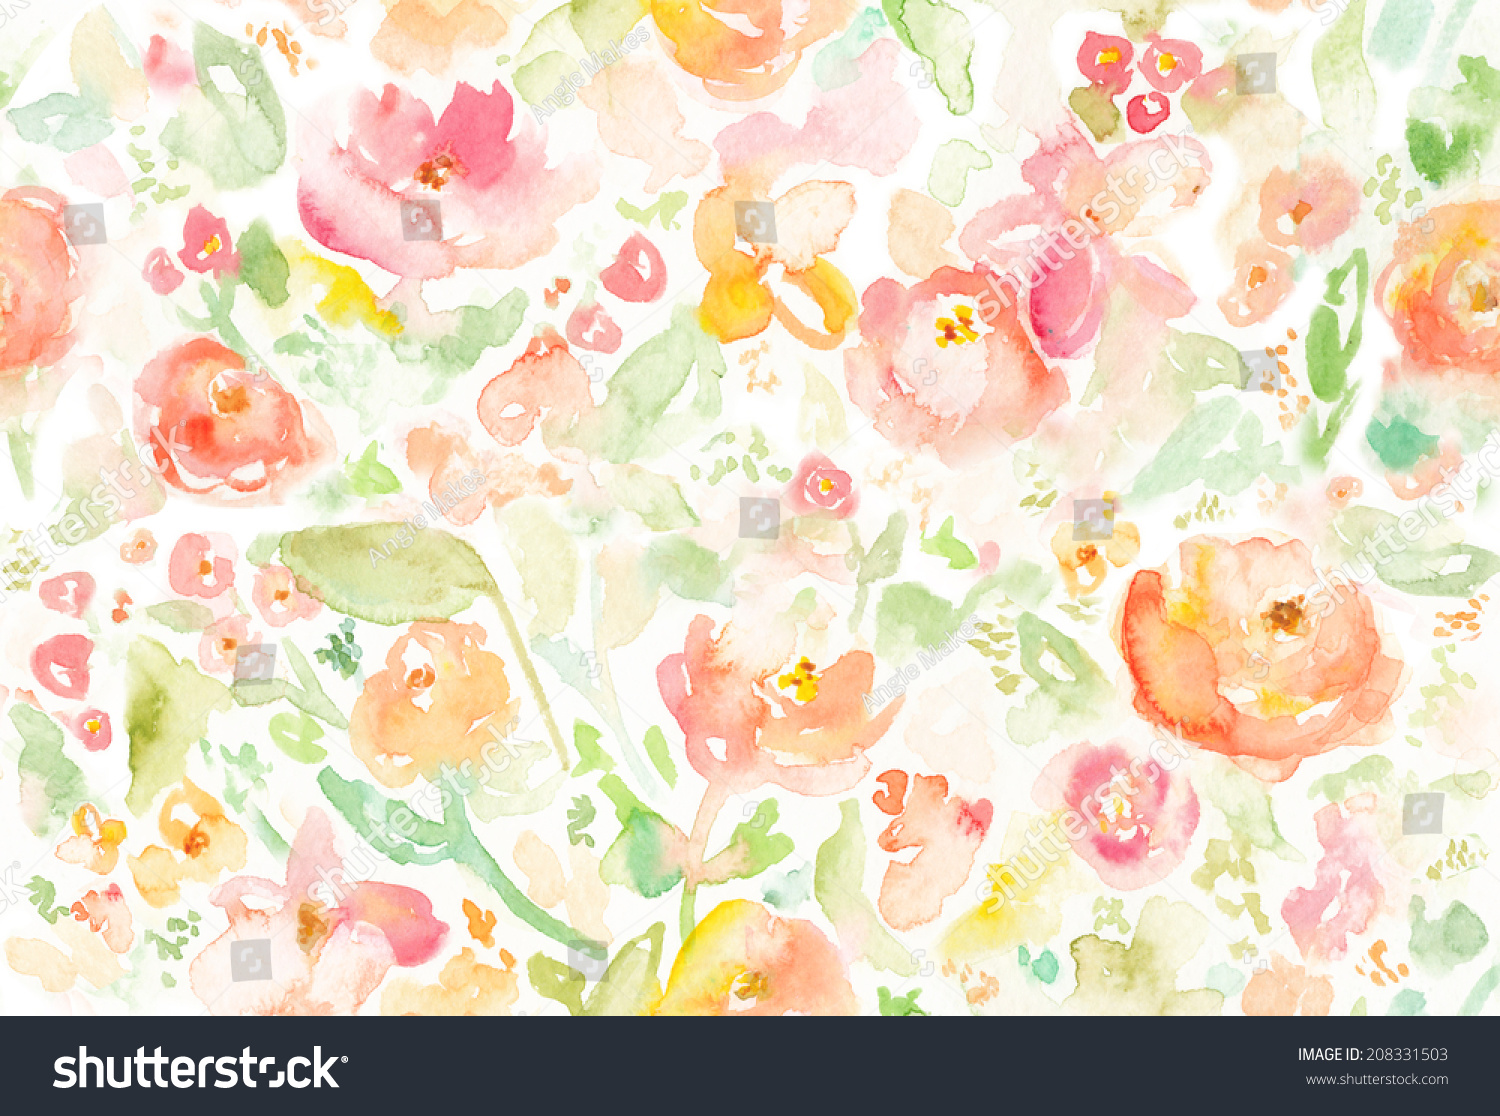 Seamless Colorful Abstract Watercolor Floral Background